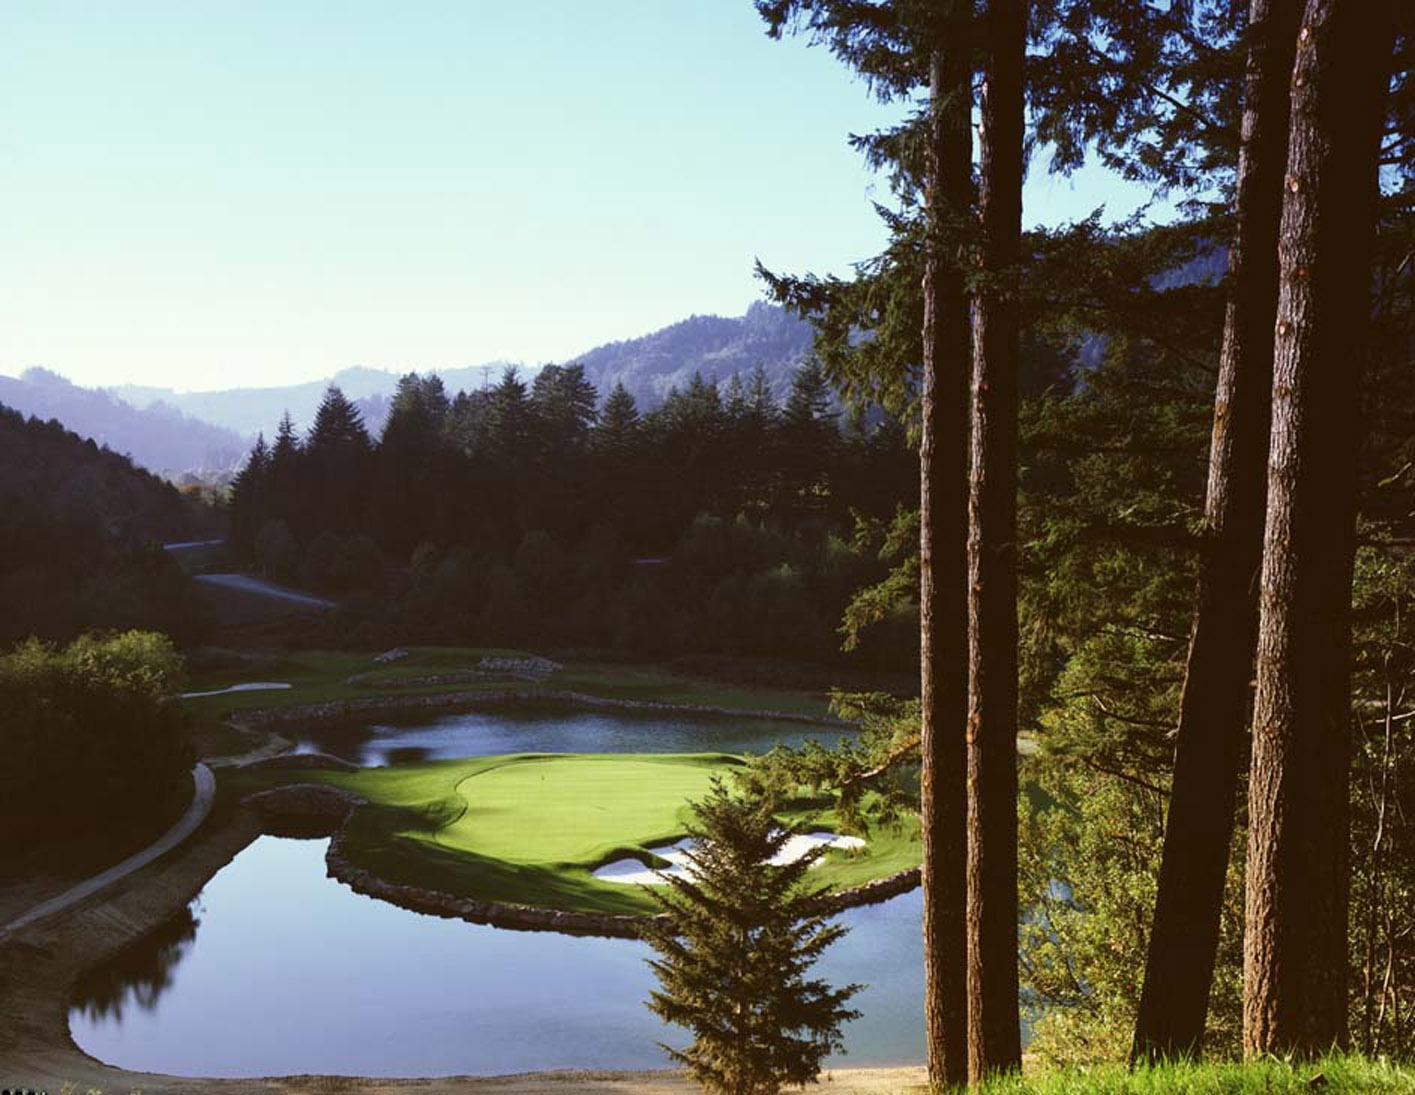 The 4th Green at Salmon Run Golf Course